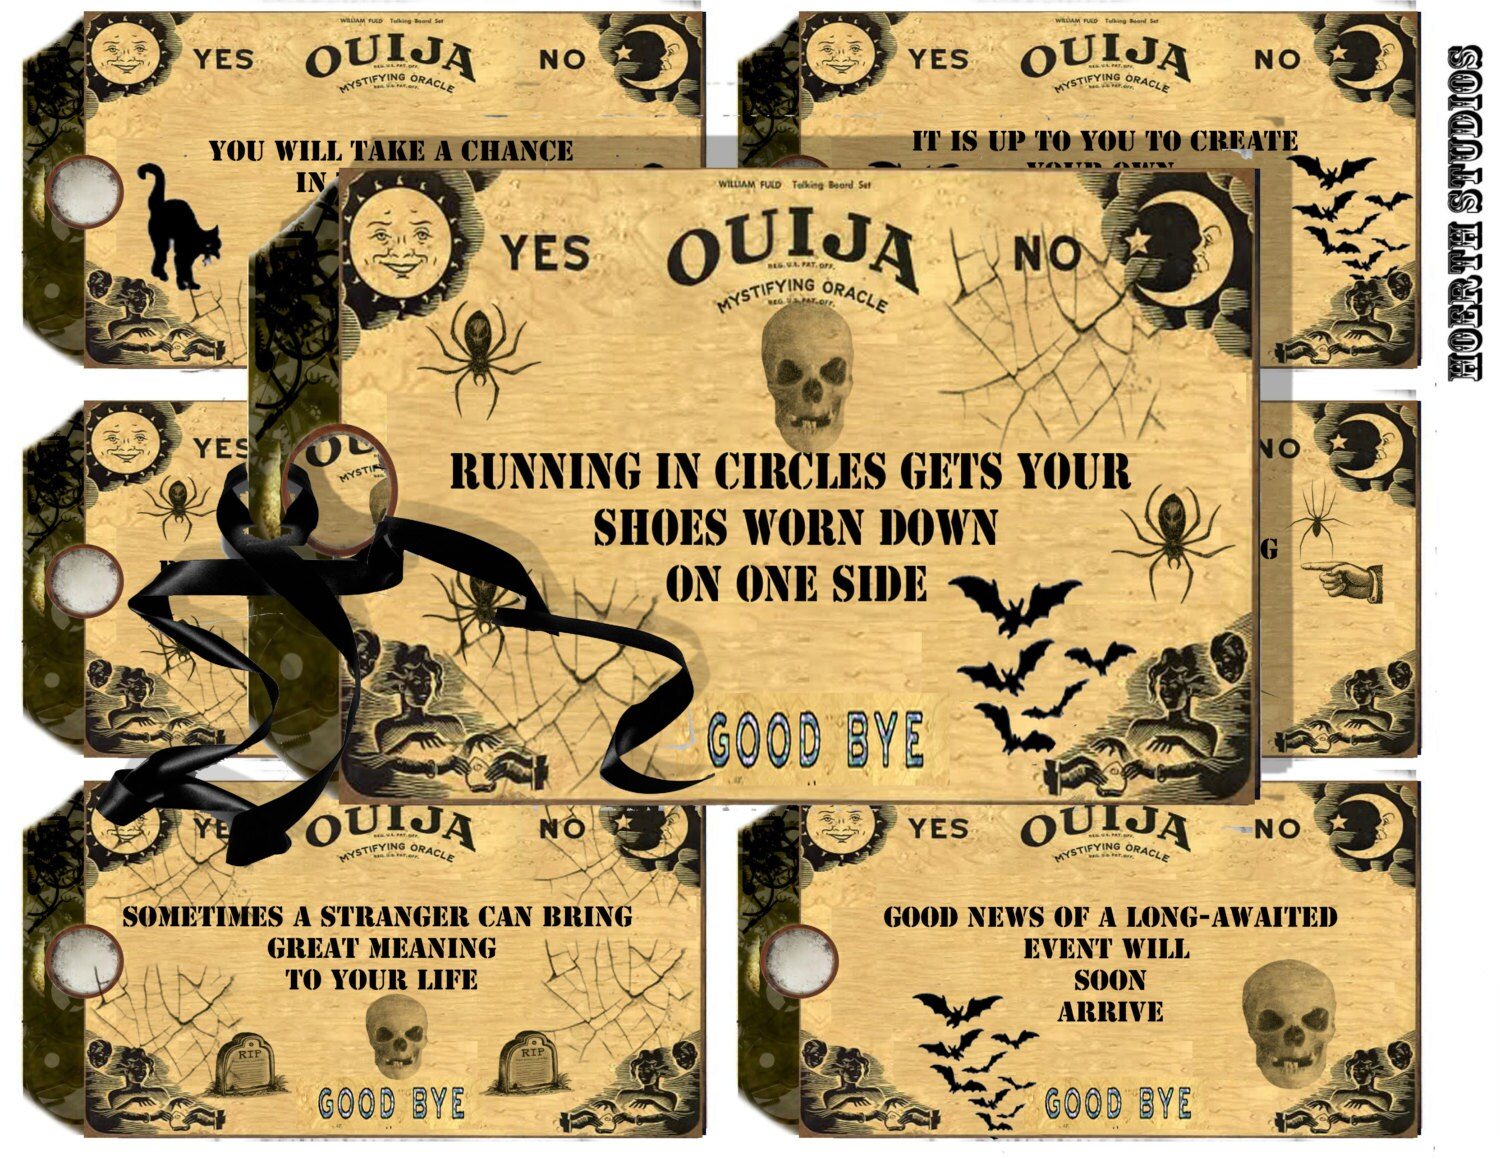 It's just a picture of Amazing Printable Ouija Board